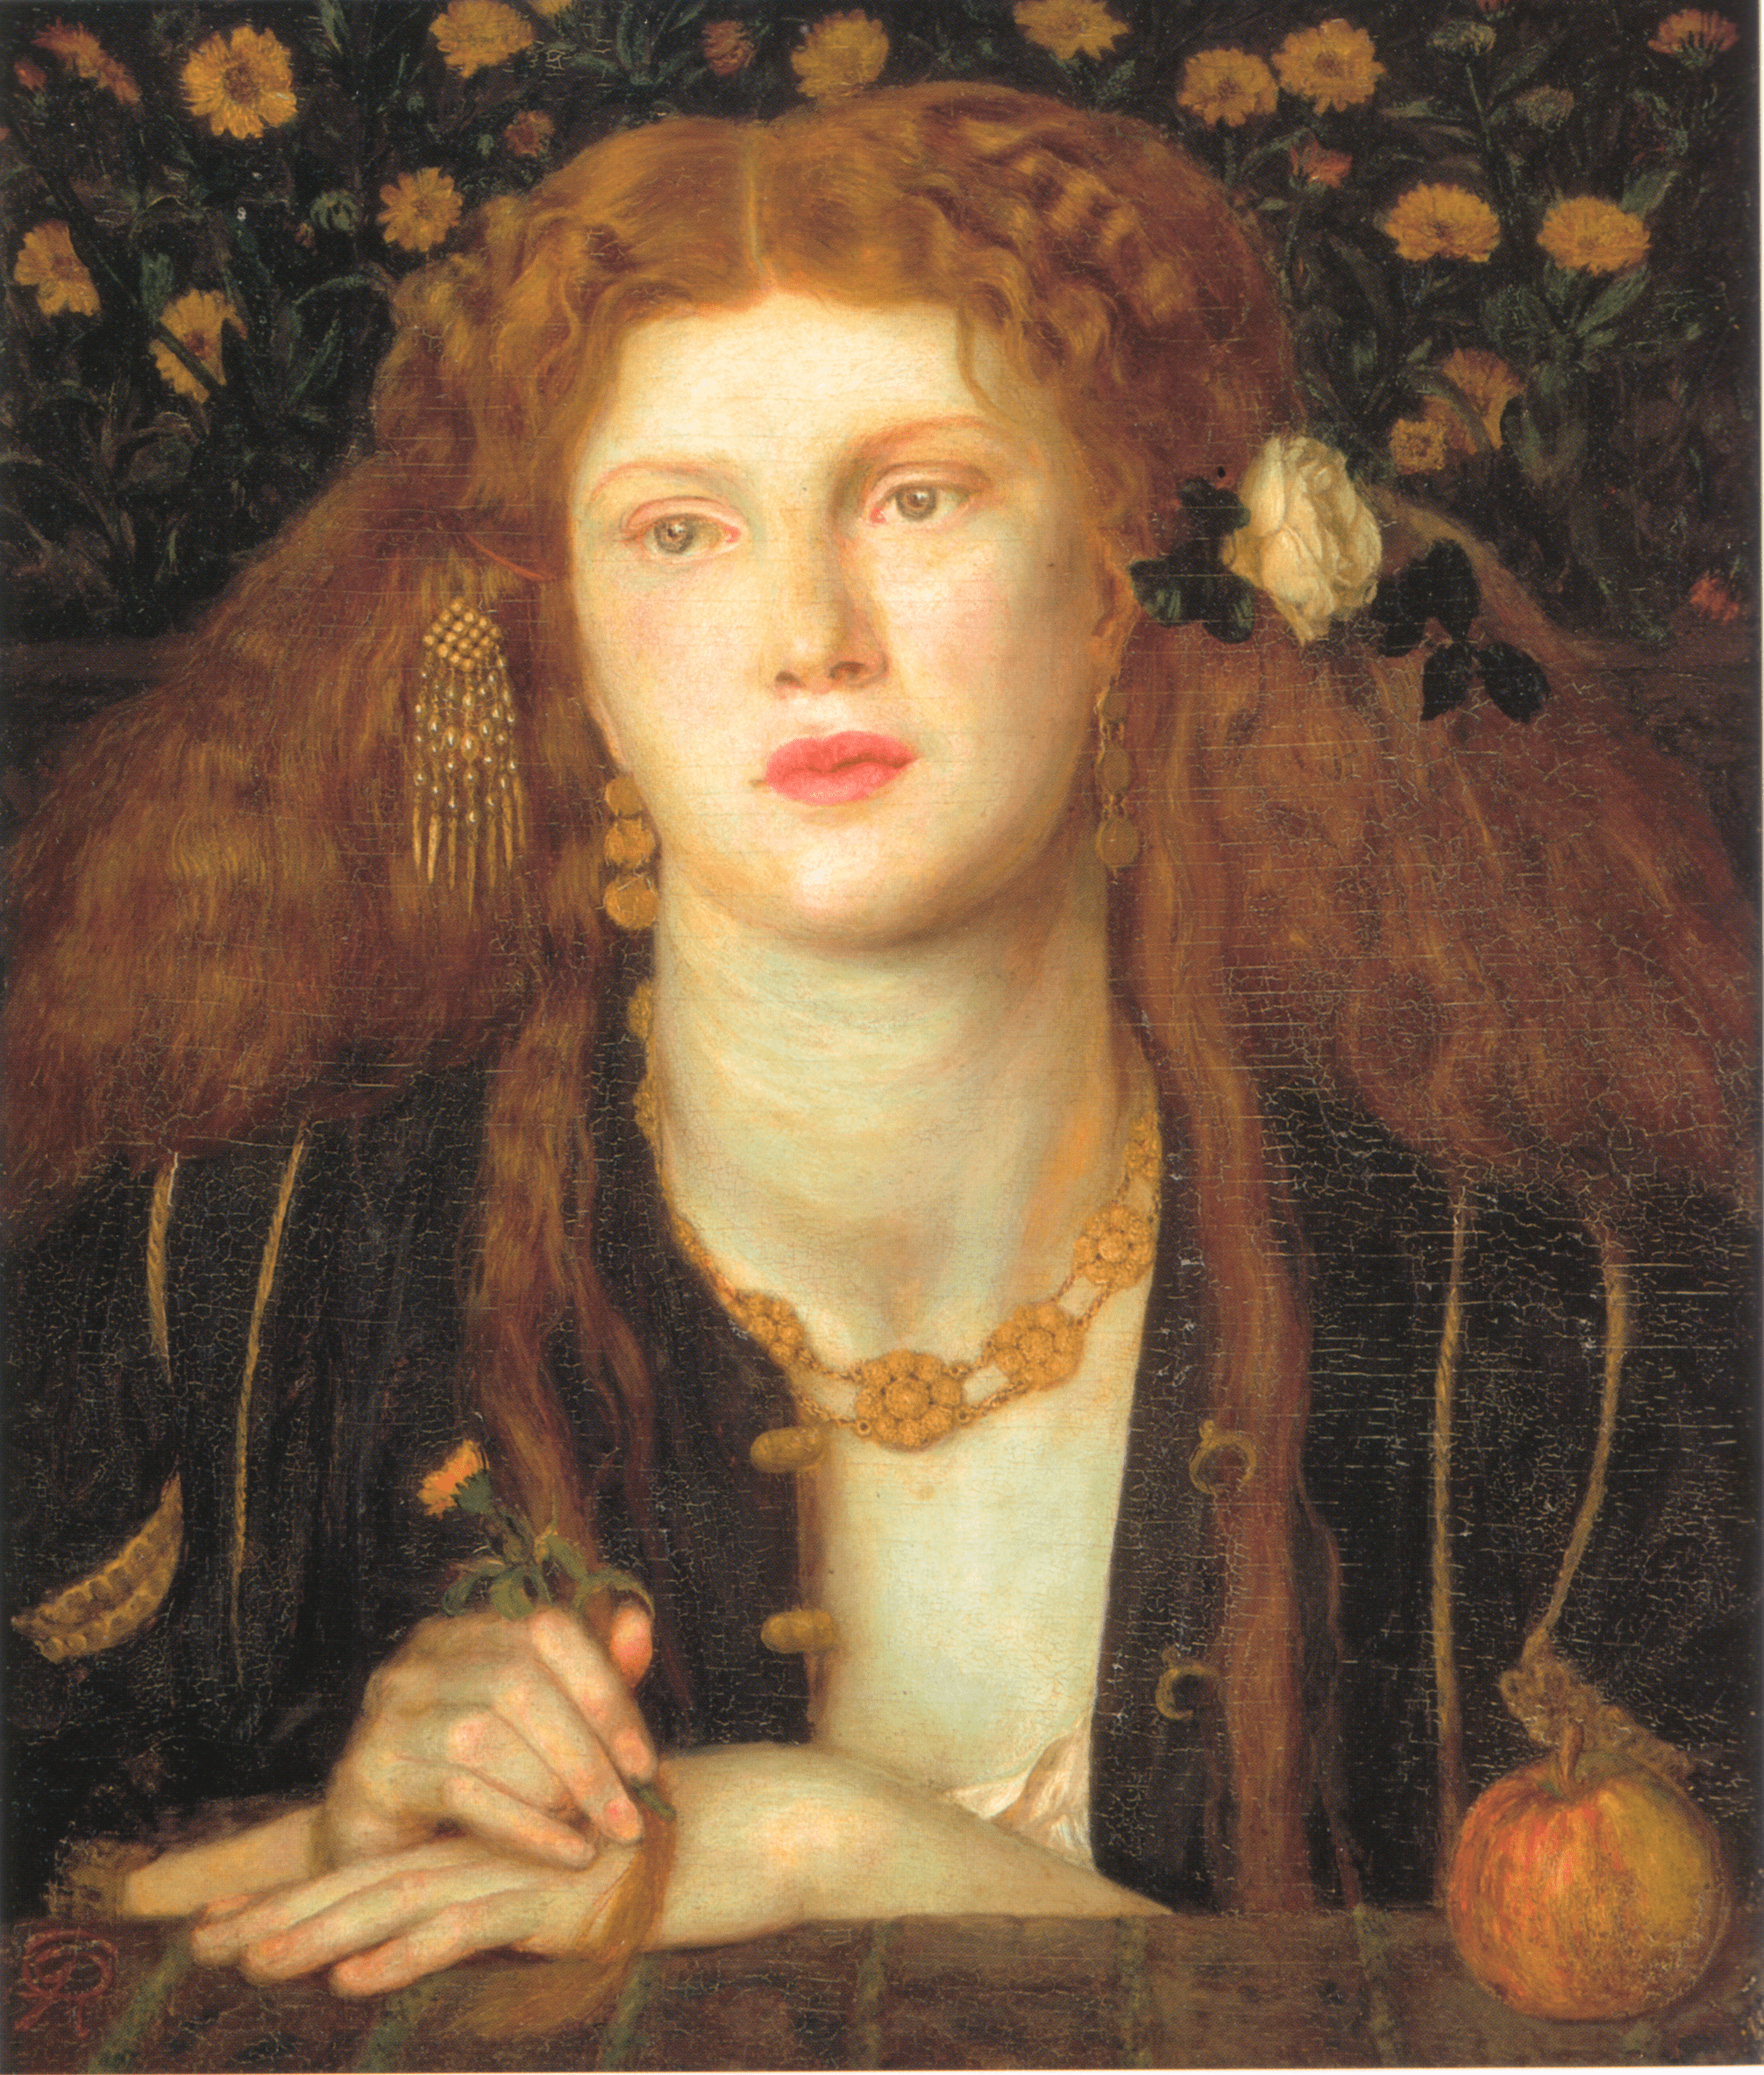 https://i1.wp.com/upload.wikimedia.org/wikipedia/commons/9/91/Dante_Gabriel_Rossetti_Bocca_Baciata_1859.png